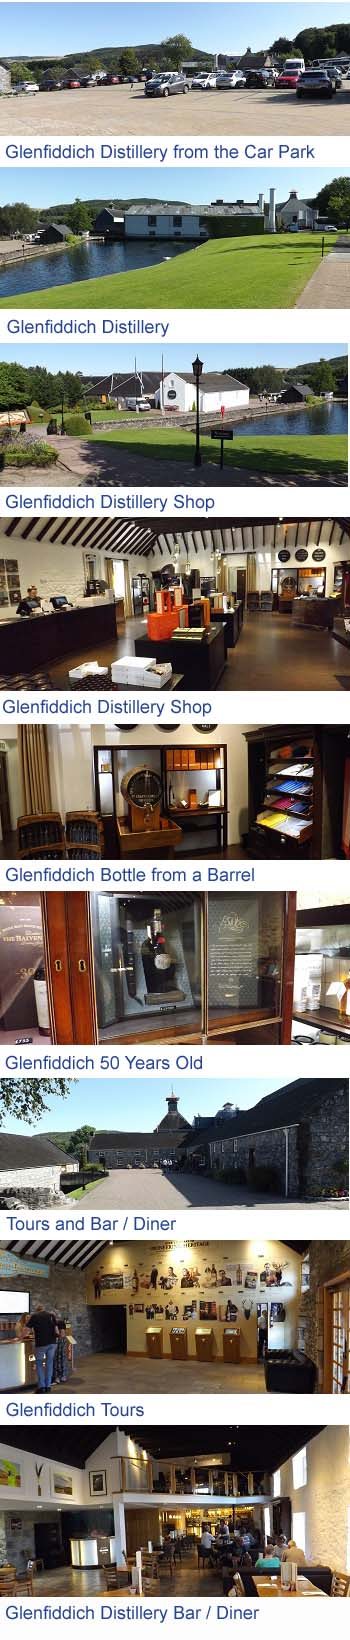 Glenfiddich Distillery Photos